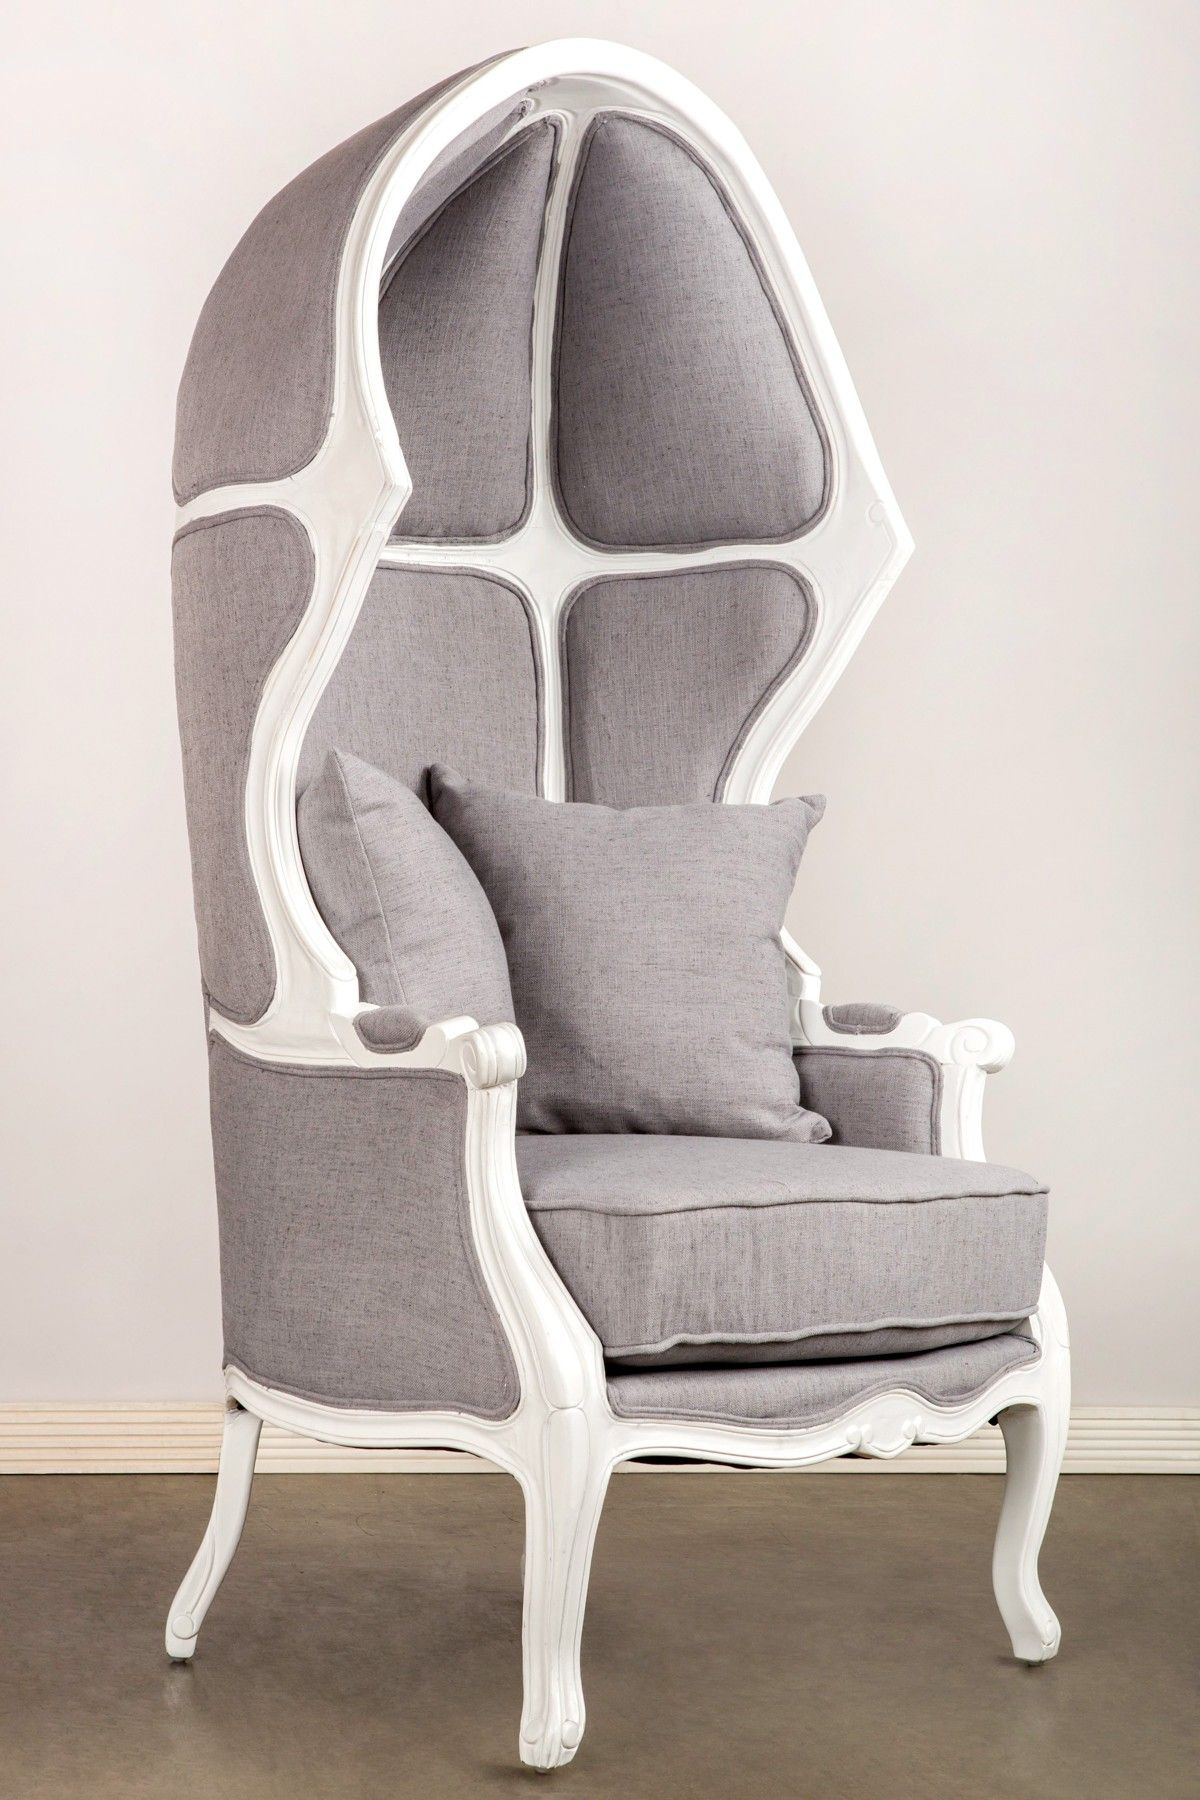 Balloon Chair By Statements By J On @HauteLook, Love This Chair!